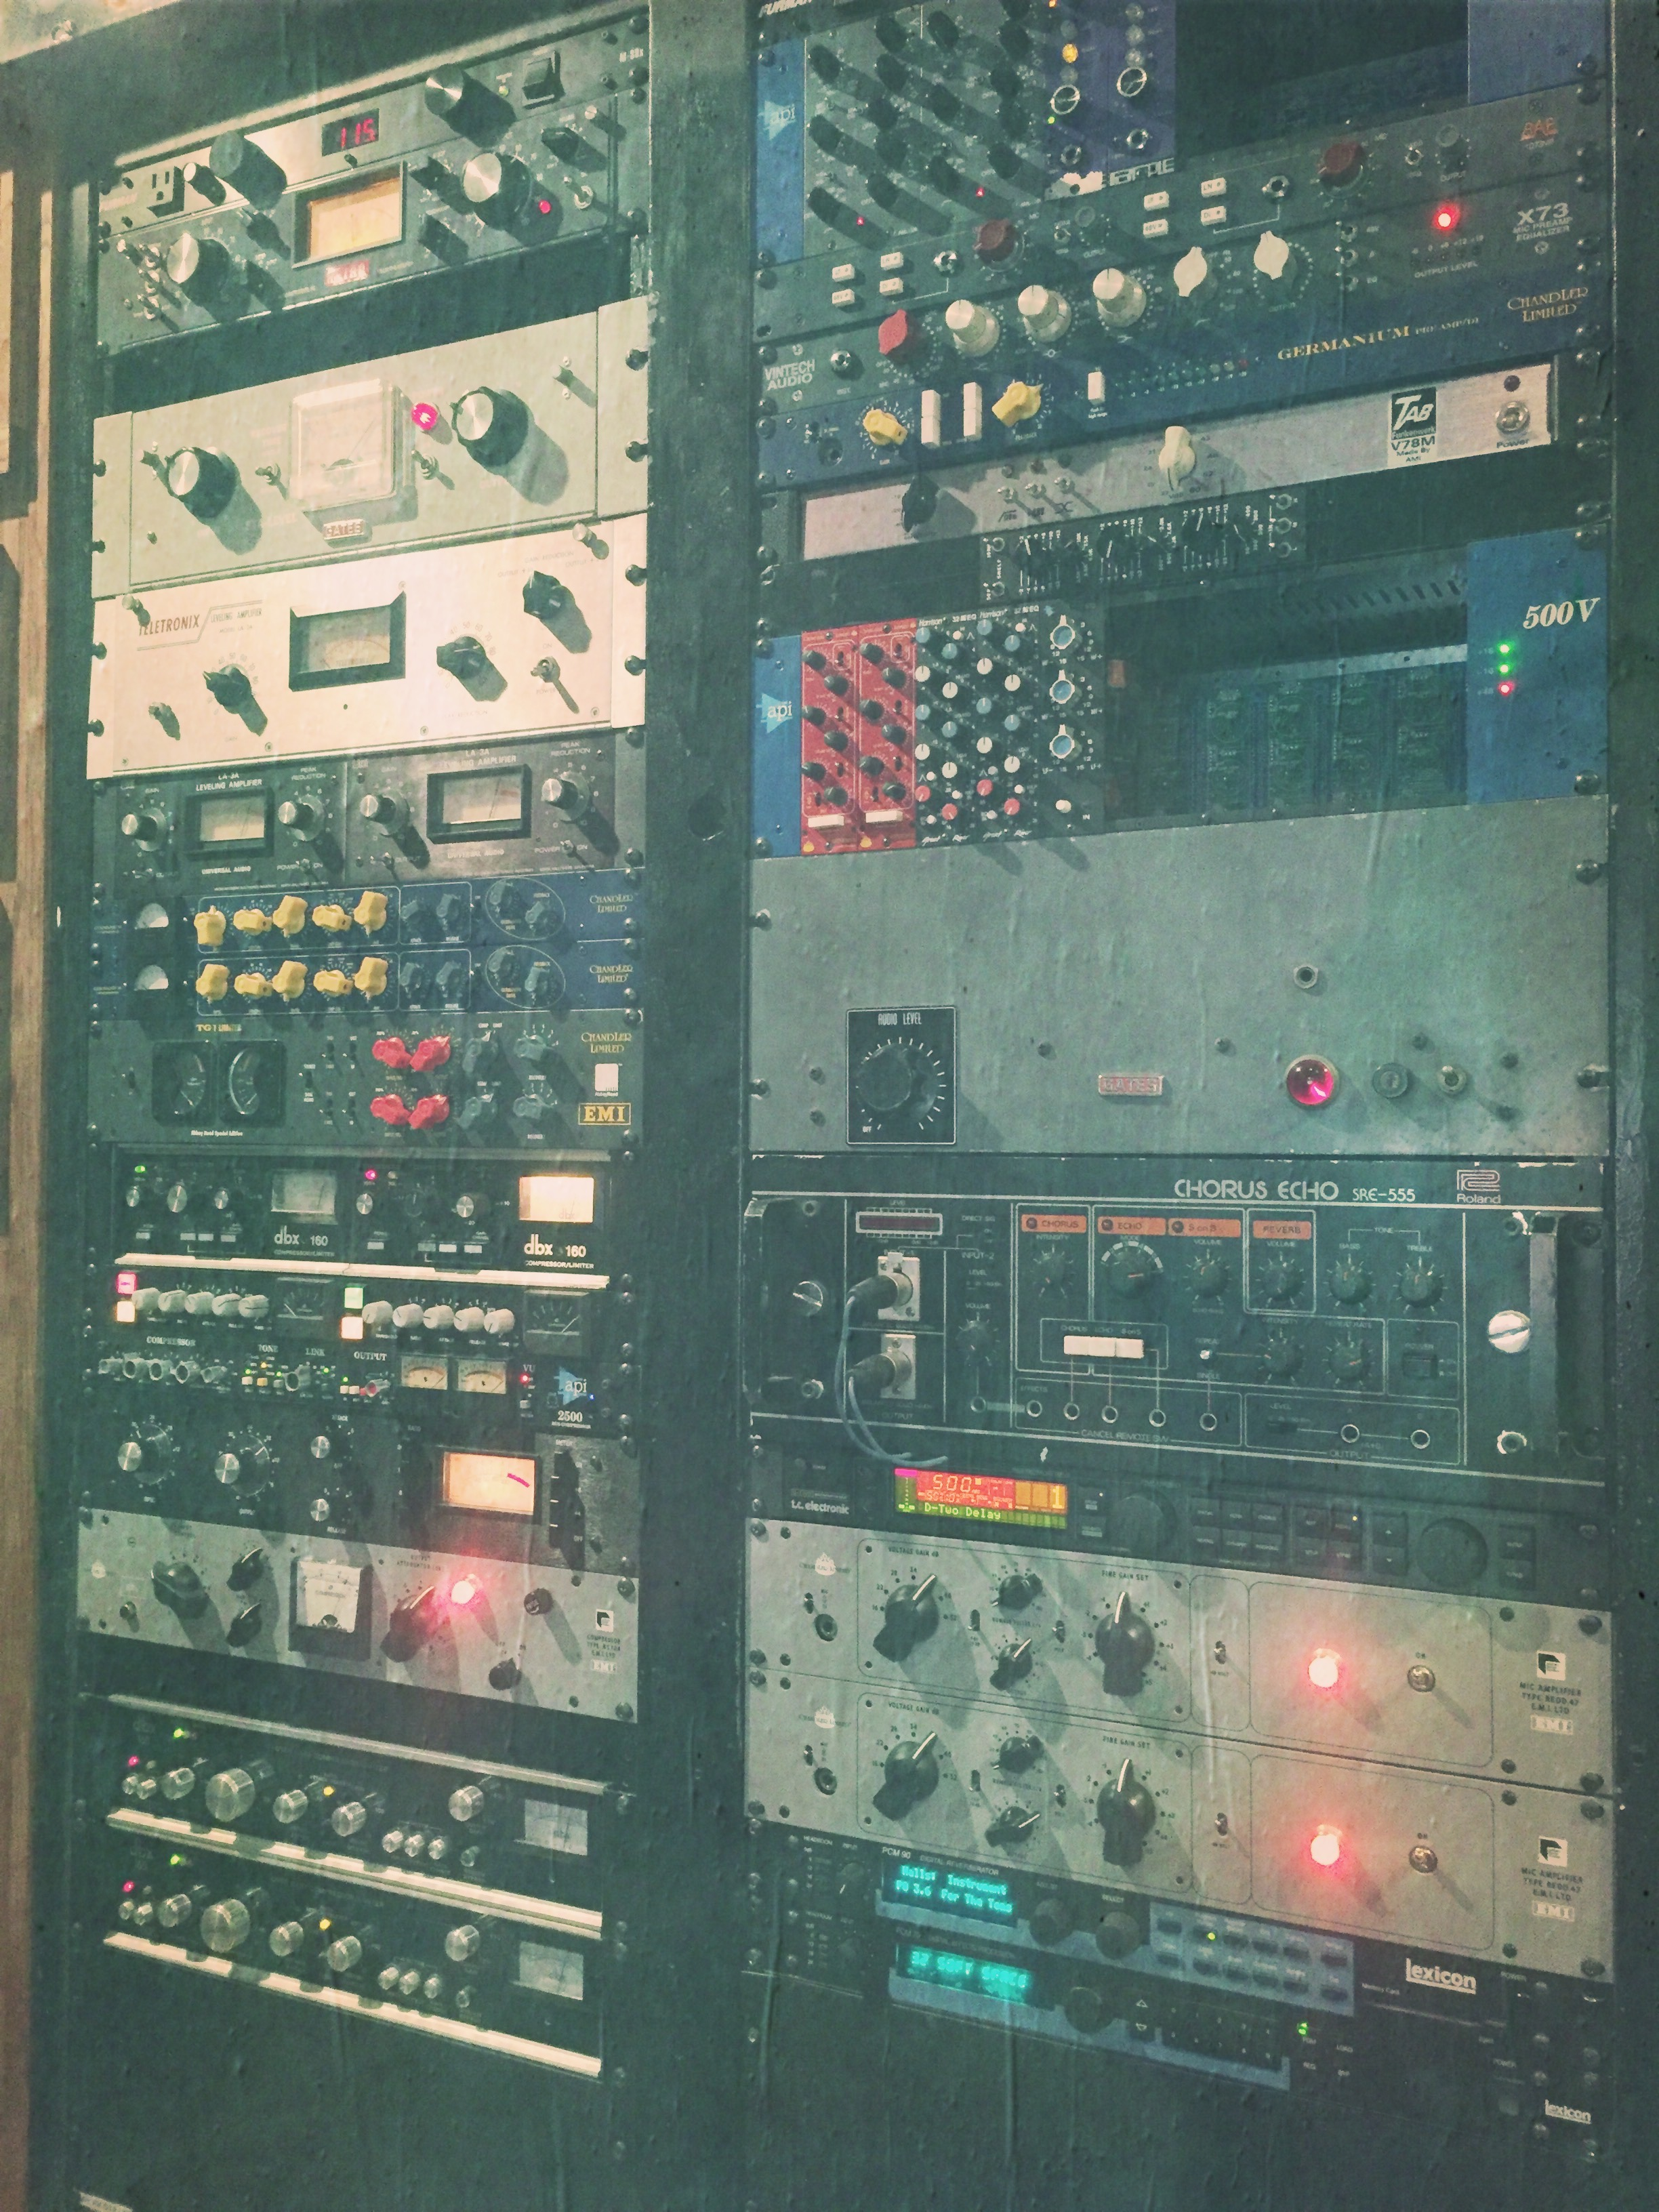 Use your gear with confidence - Learn to use those eq's and compressors you have at home to impress your clients. Be confident in your drum sounds and generate more business.